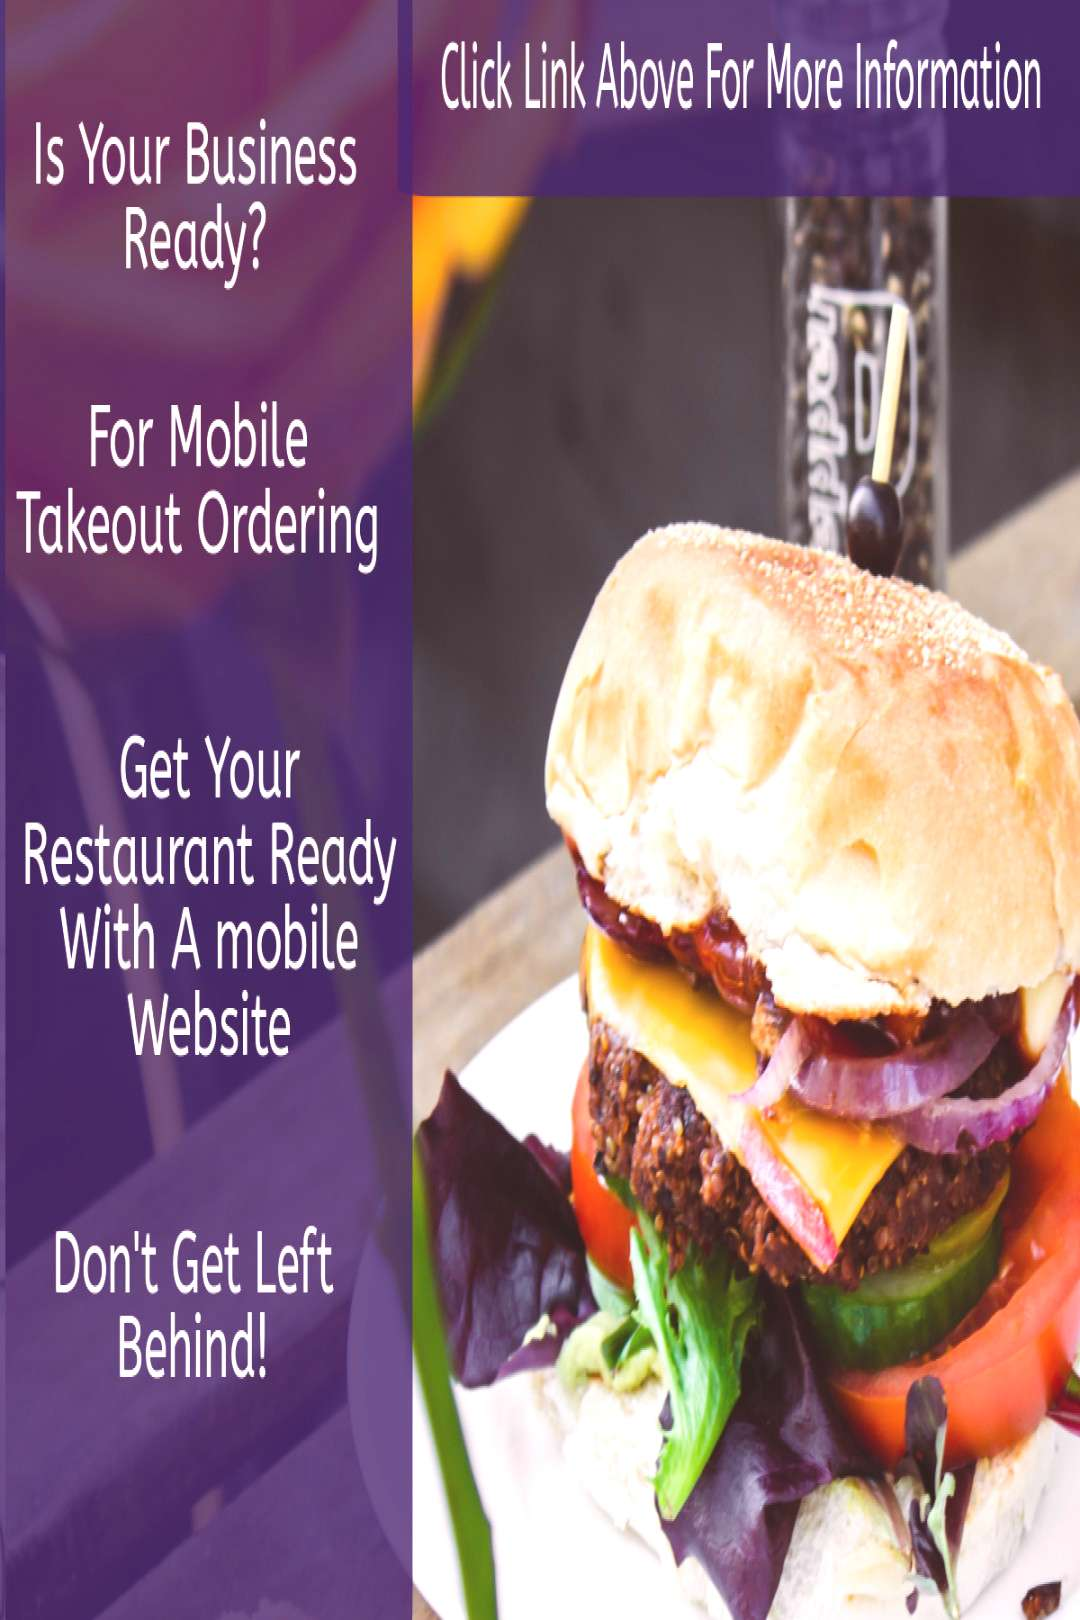 Mobile Food Ordering Get your restaurant ready for the mobile food ordering revolution. Most local